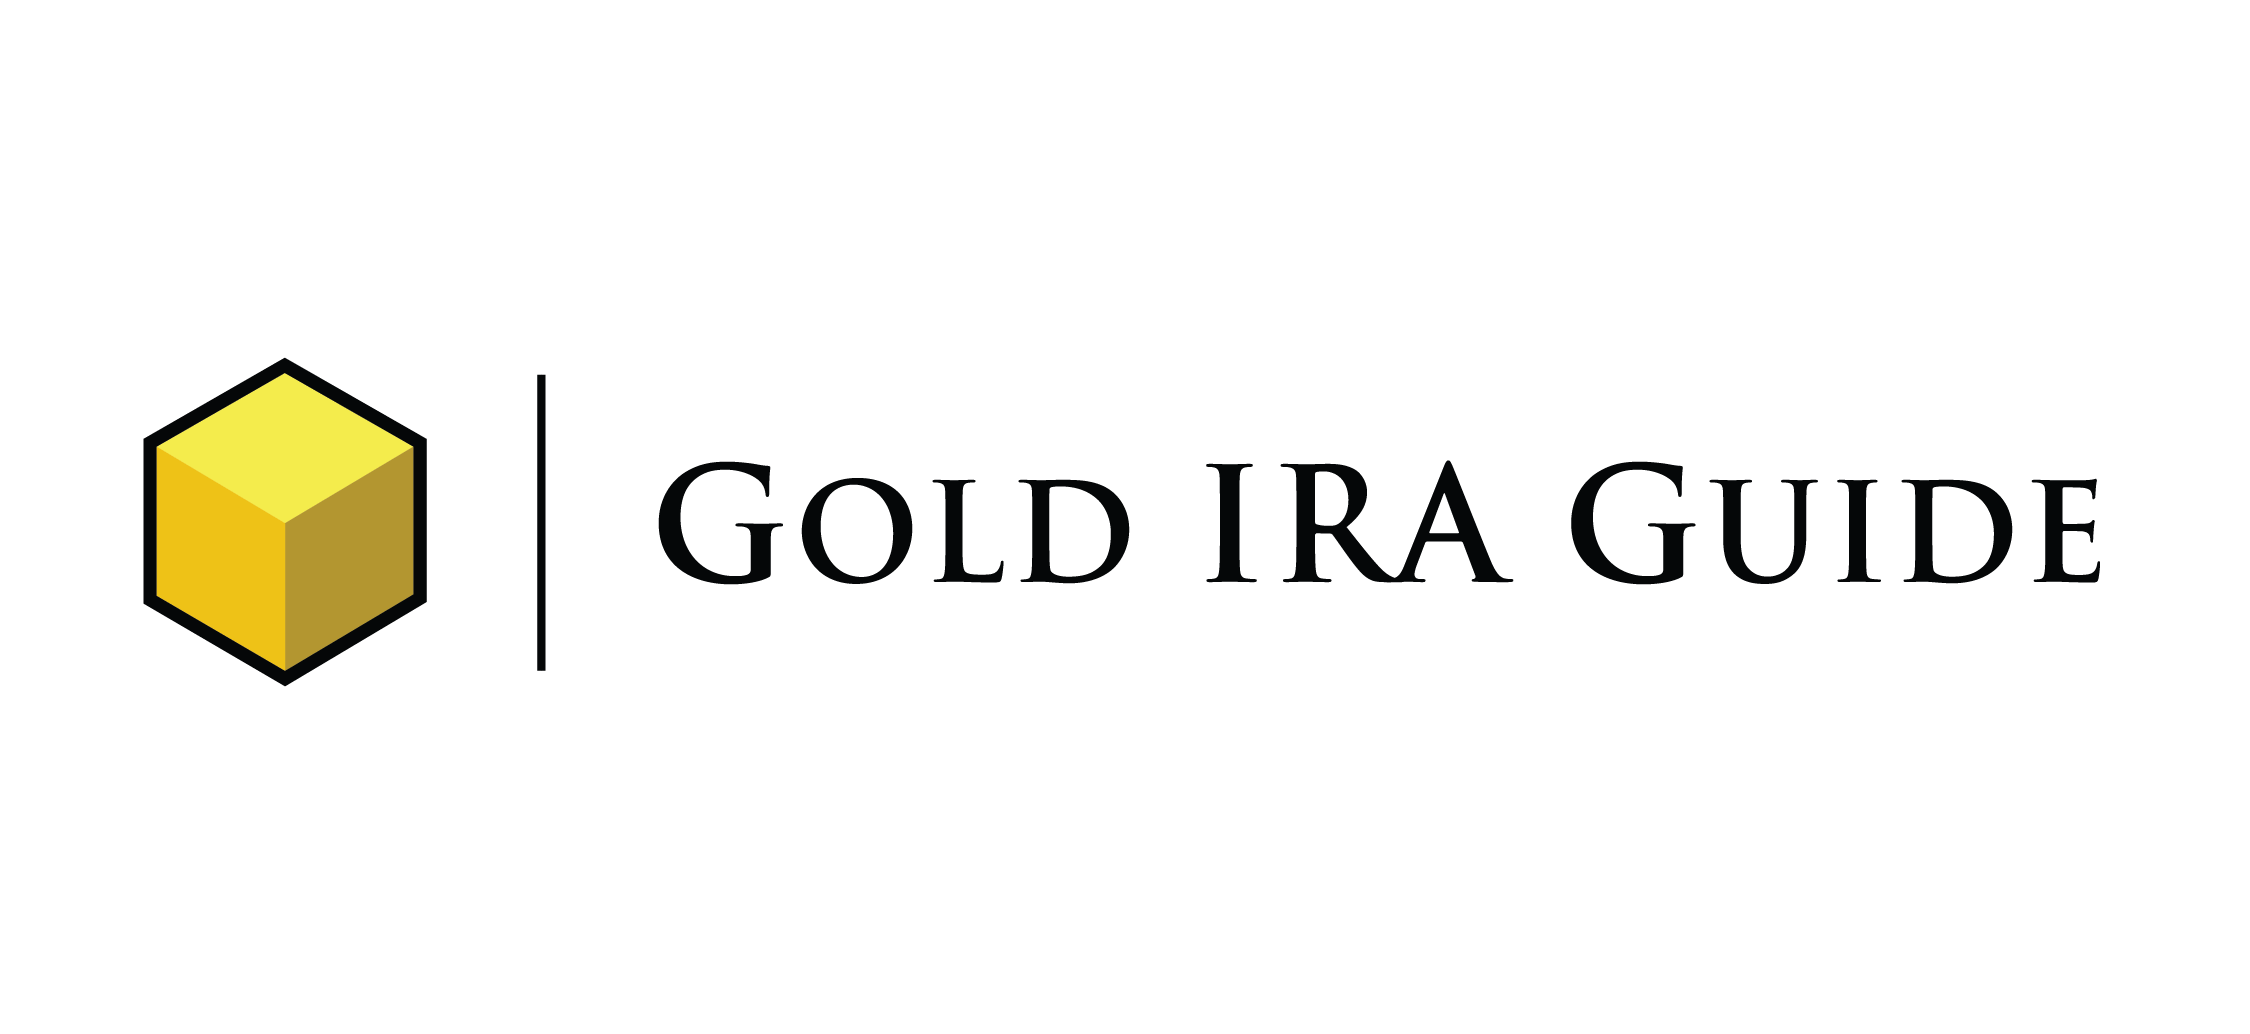 Gold IRA Guide: Should You Consider Alternative Assets In An IRA? Thumbnail